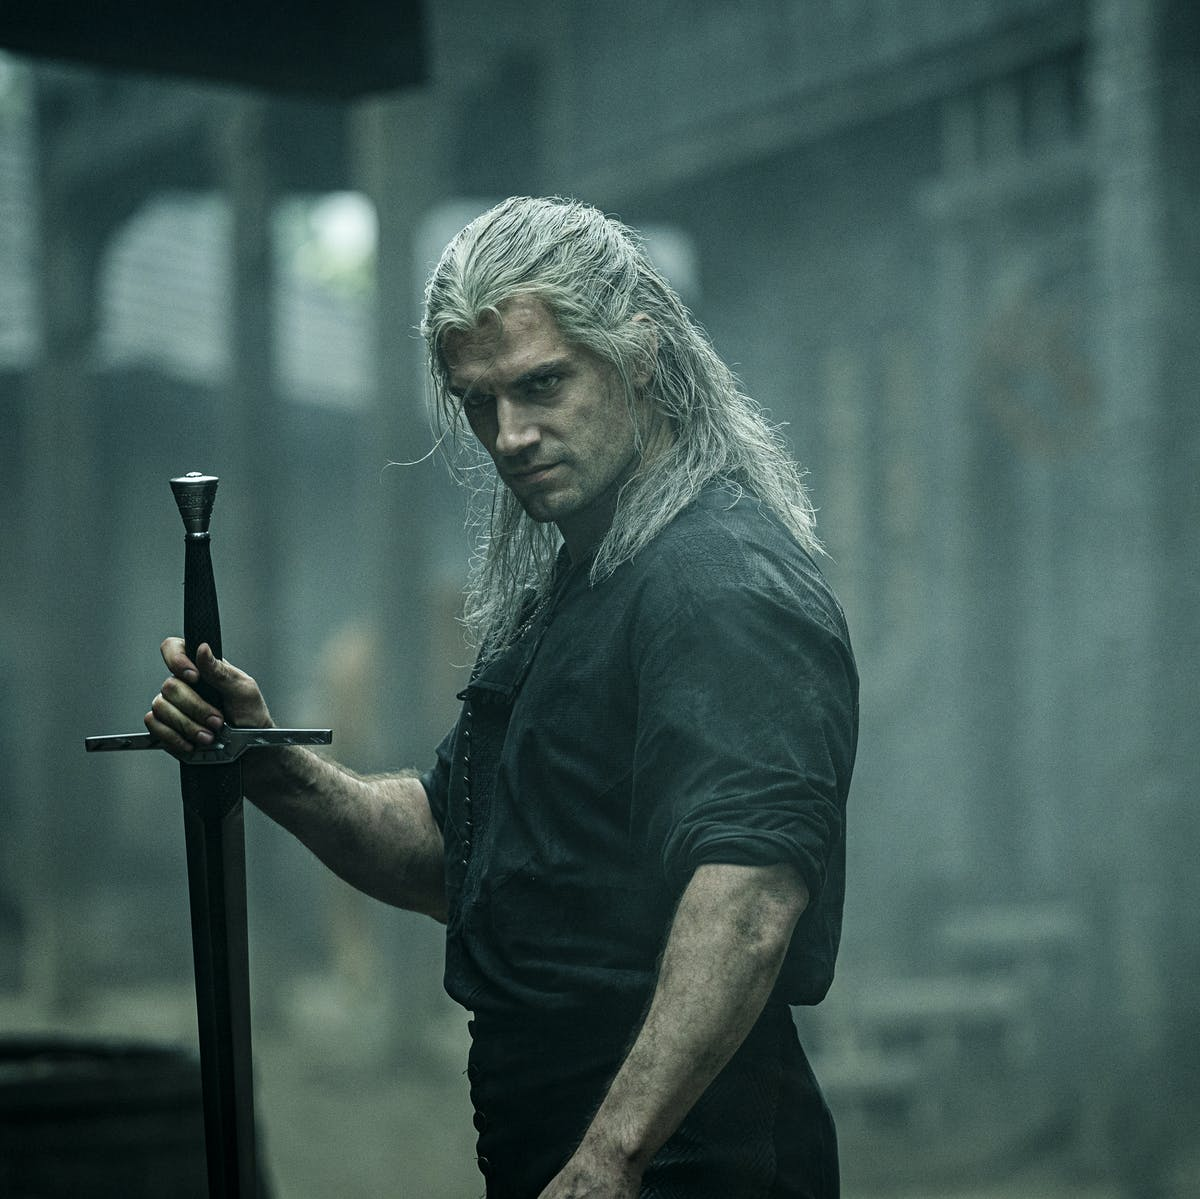 What is a Witcher and what can he do? Netflix's new fantasy show, explained